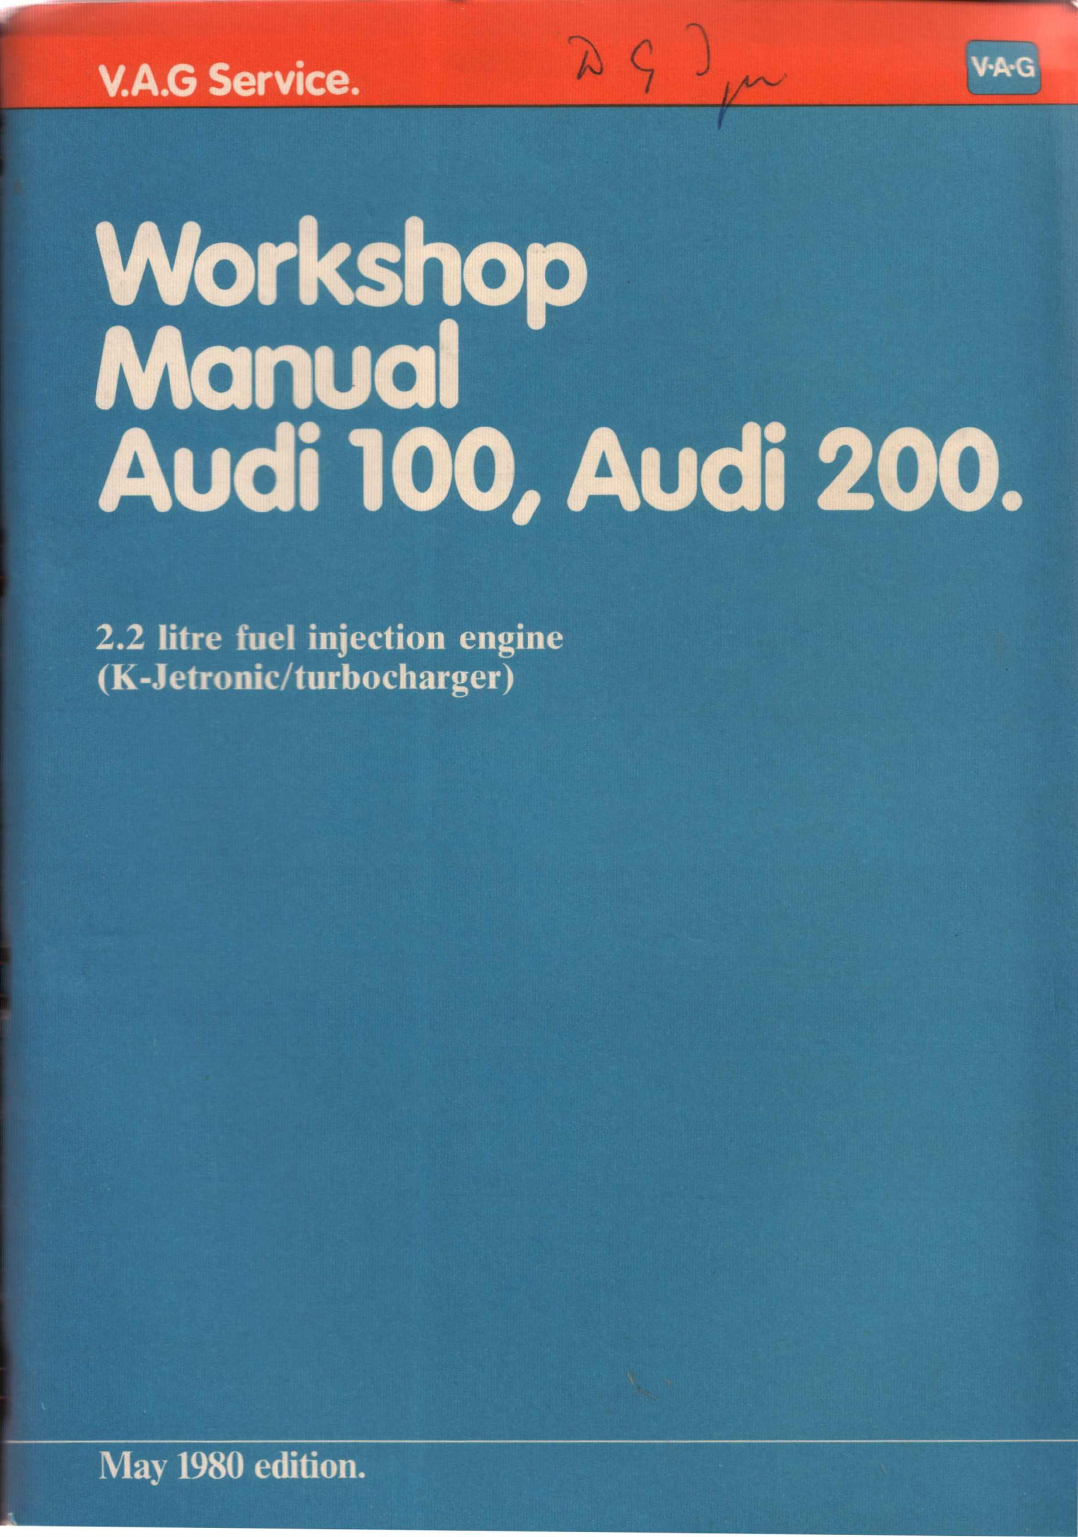 See our other Audi 200 Manuals: